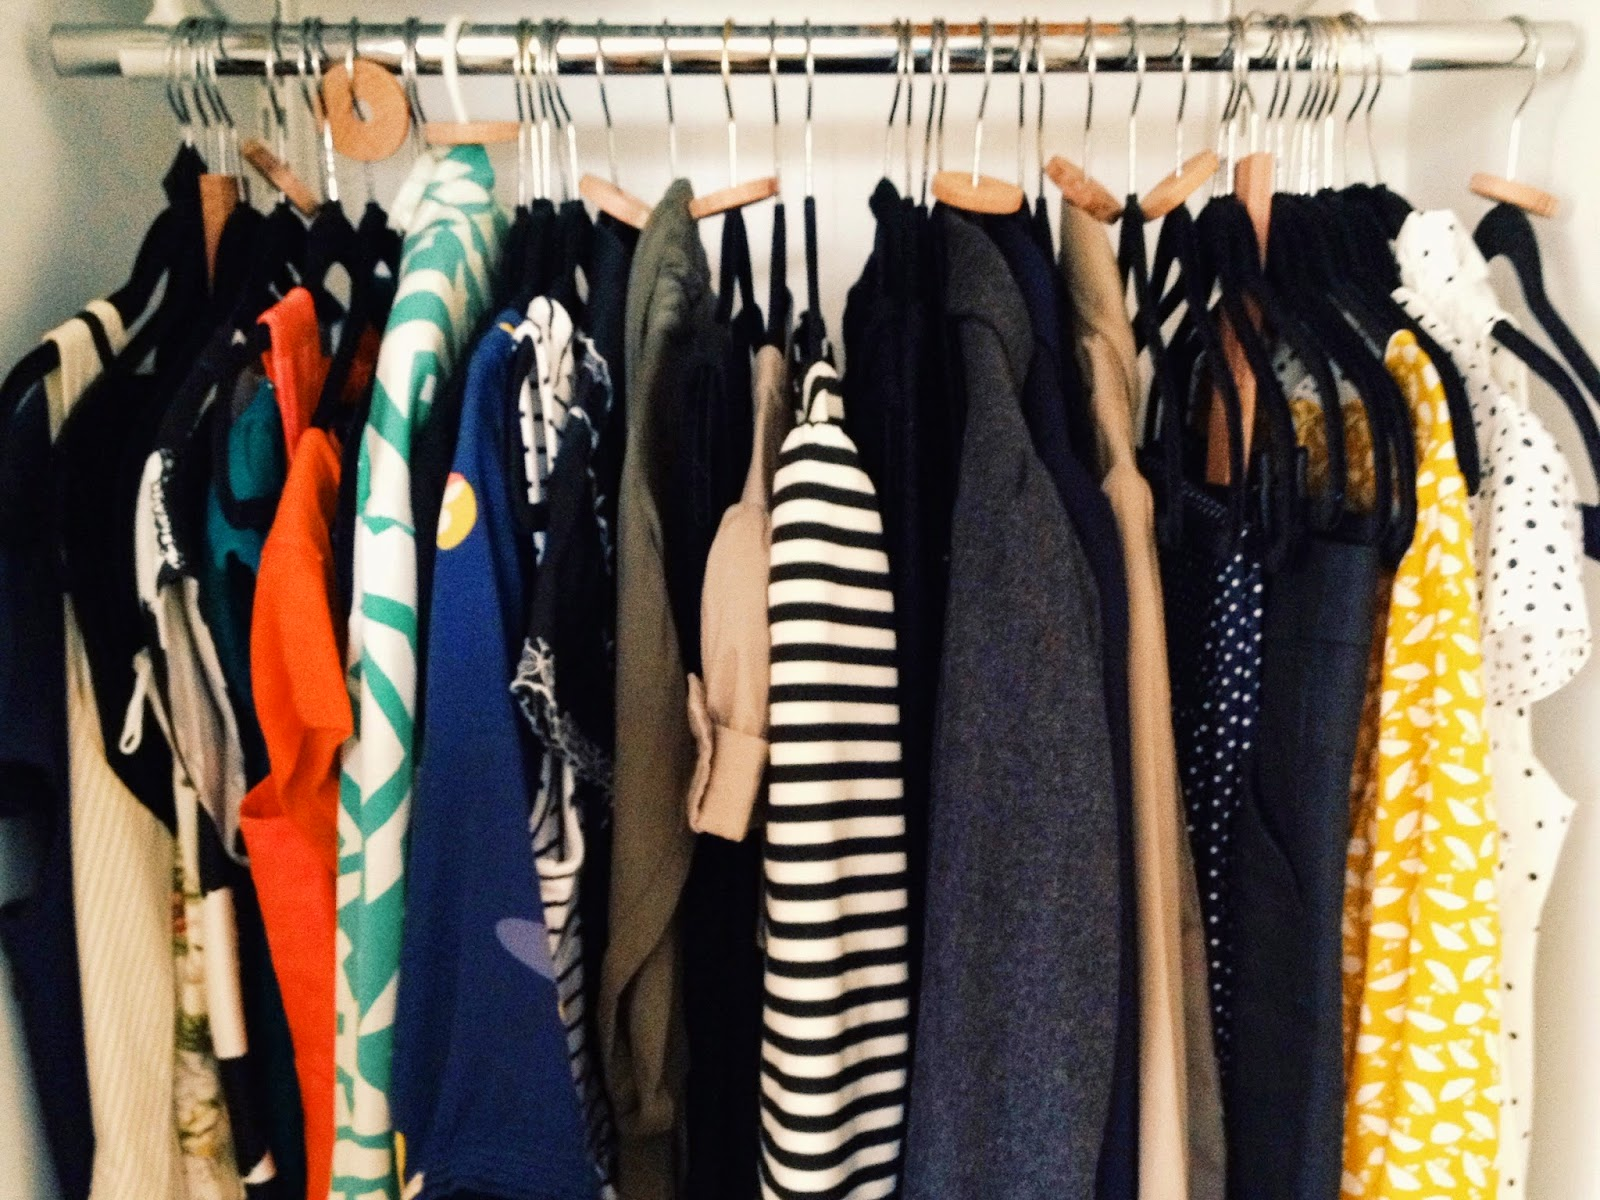 Superb I Thought Iu0027d Share Some Of My Tips For How To Avoid The Dry Cleaner And  Some Alternatives To Dry Cleaning That You Can Try At Home.